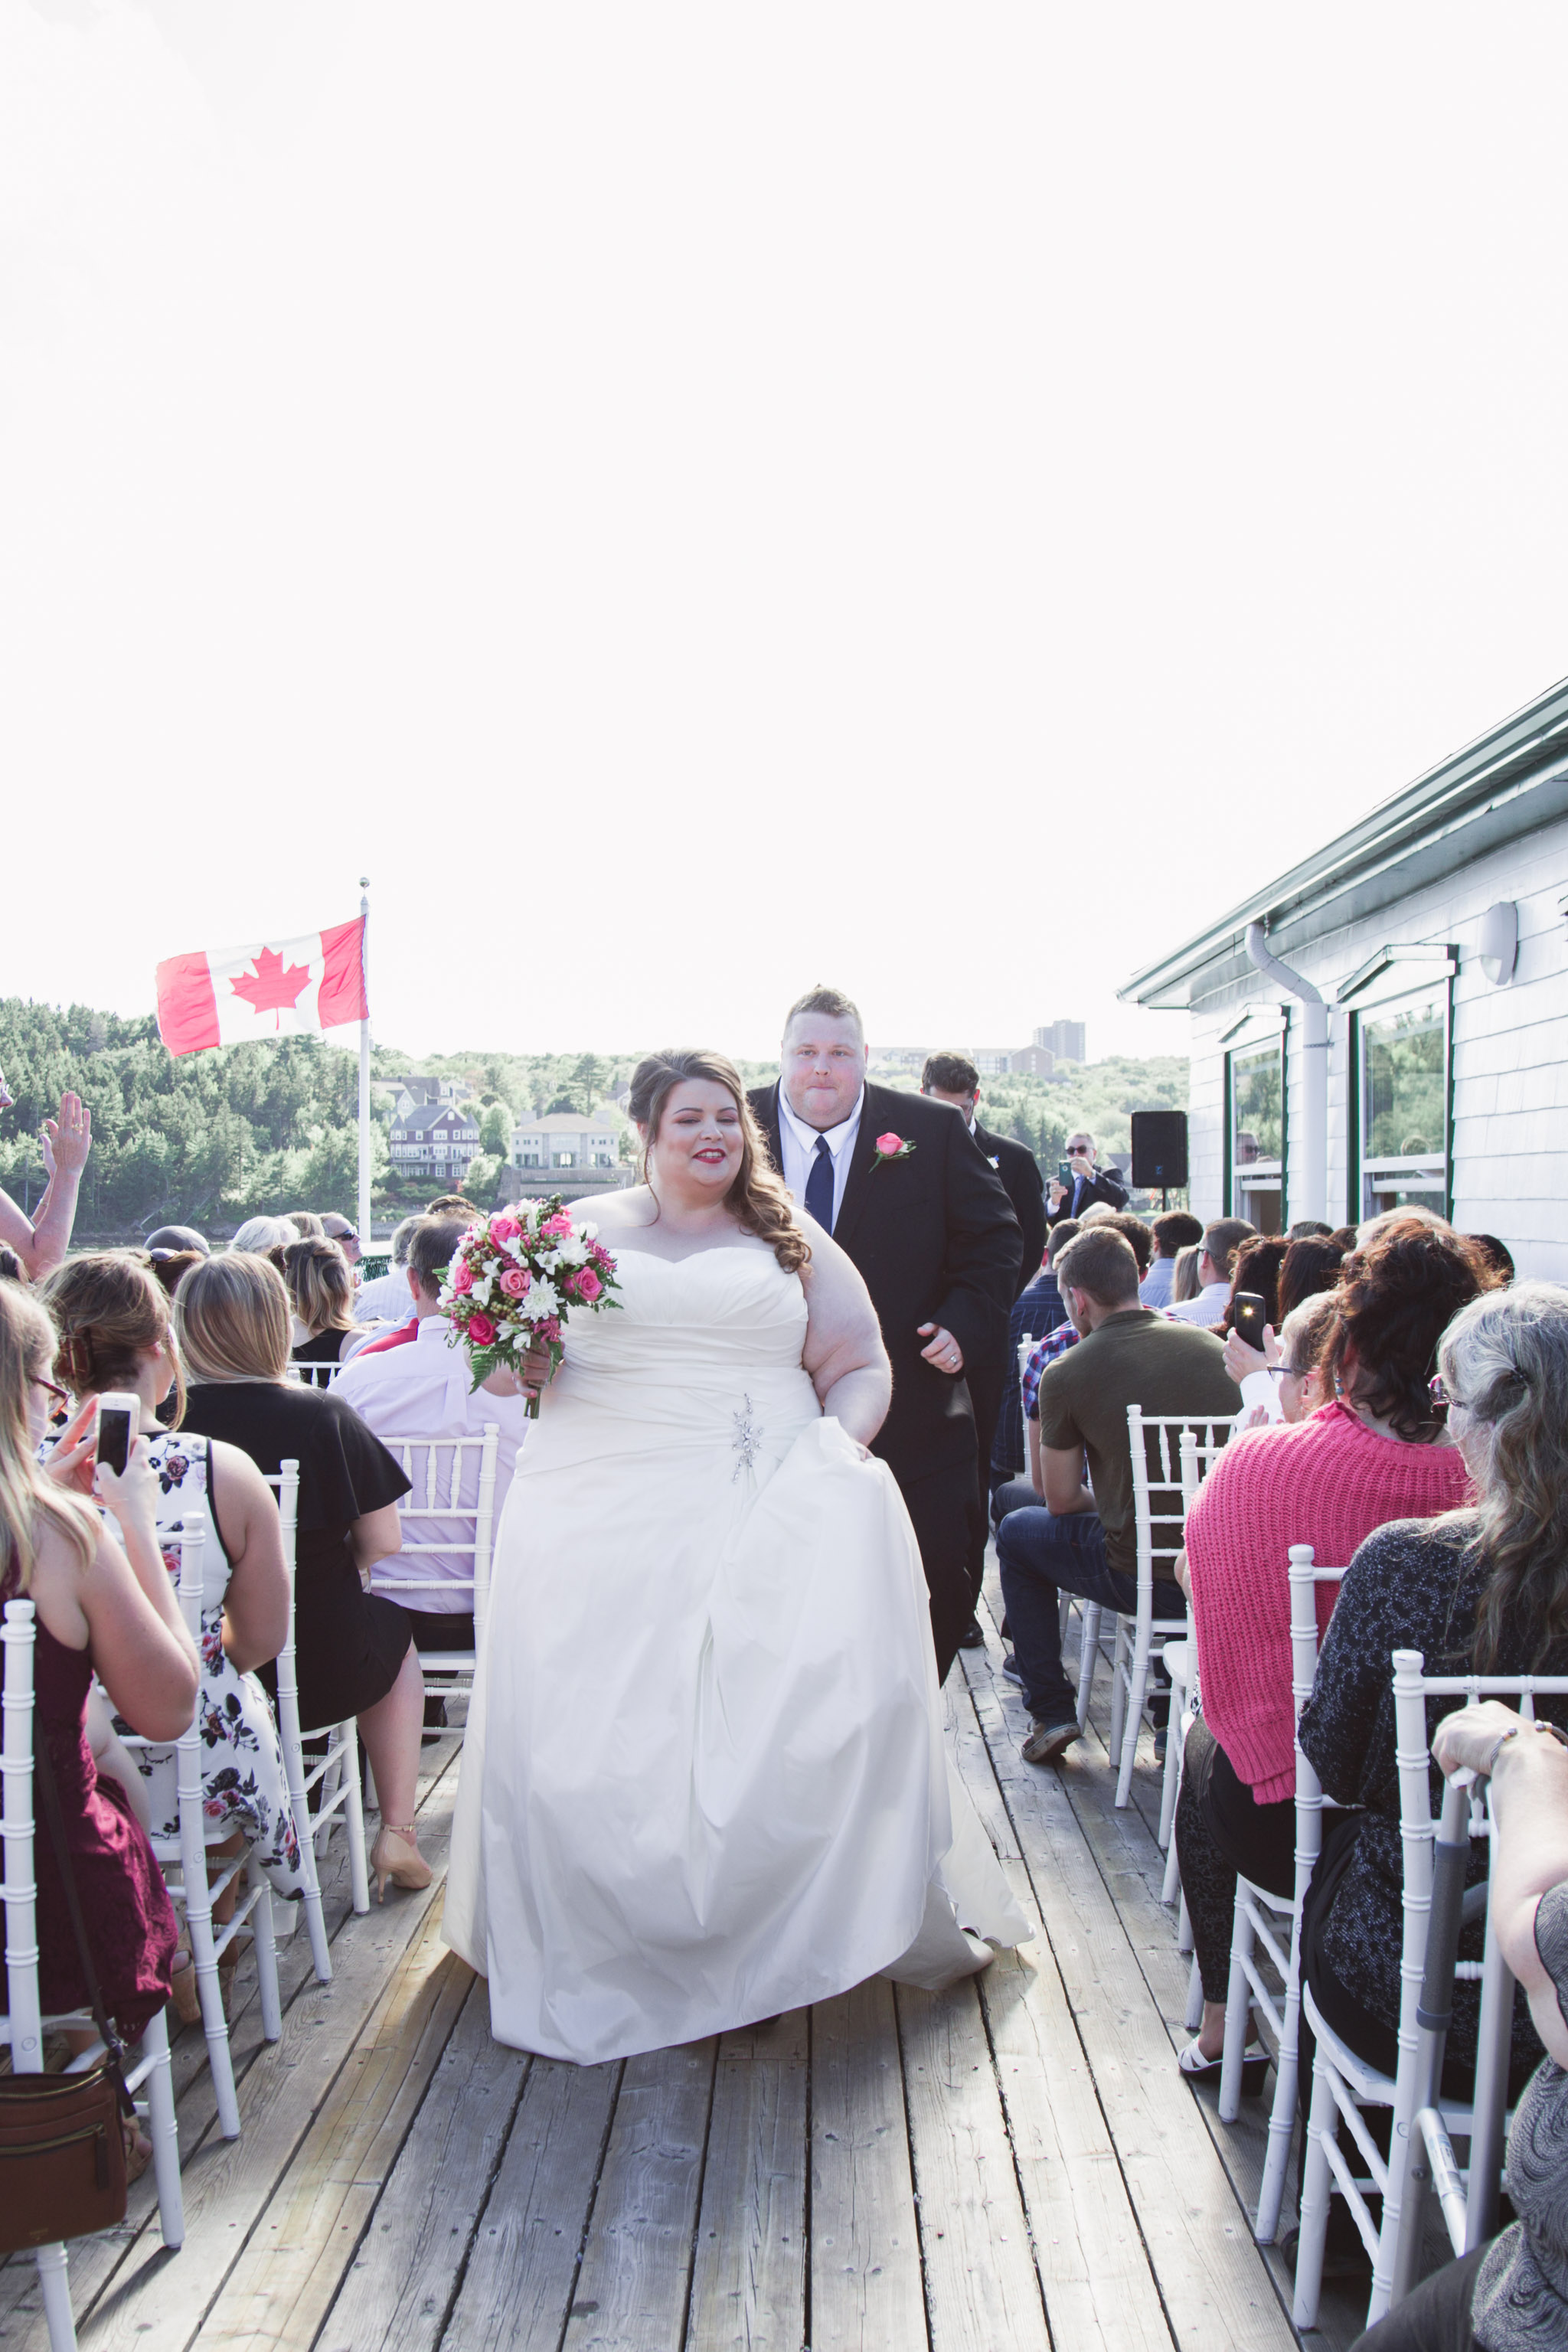 Image of bride and groom walking down an isle